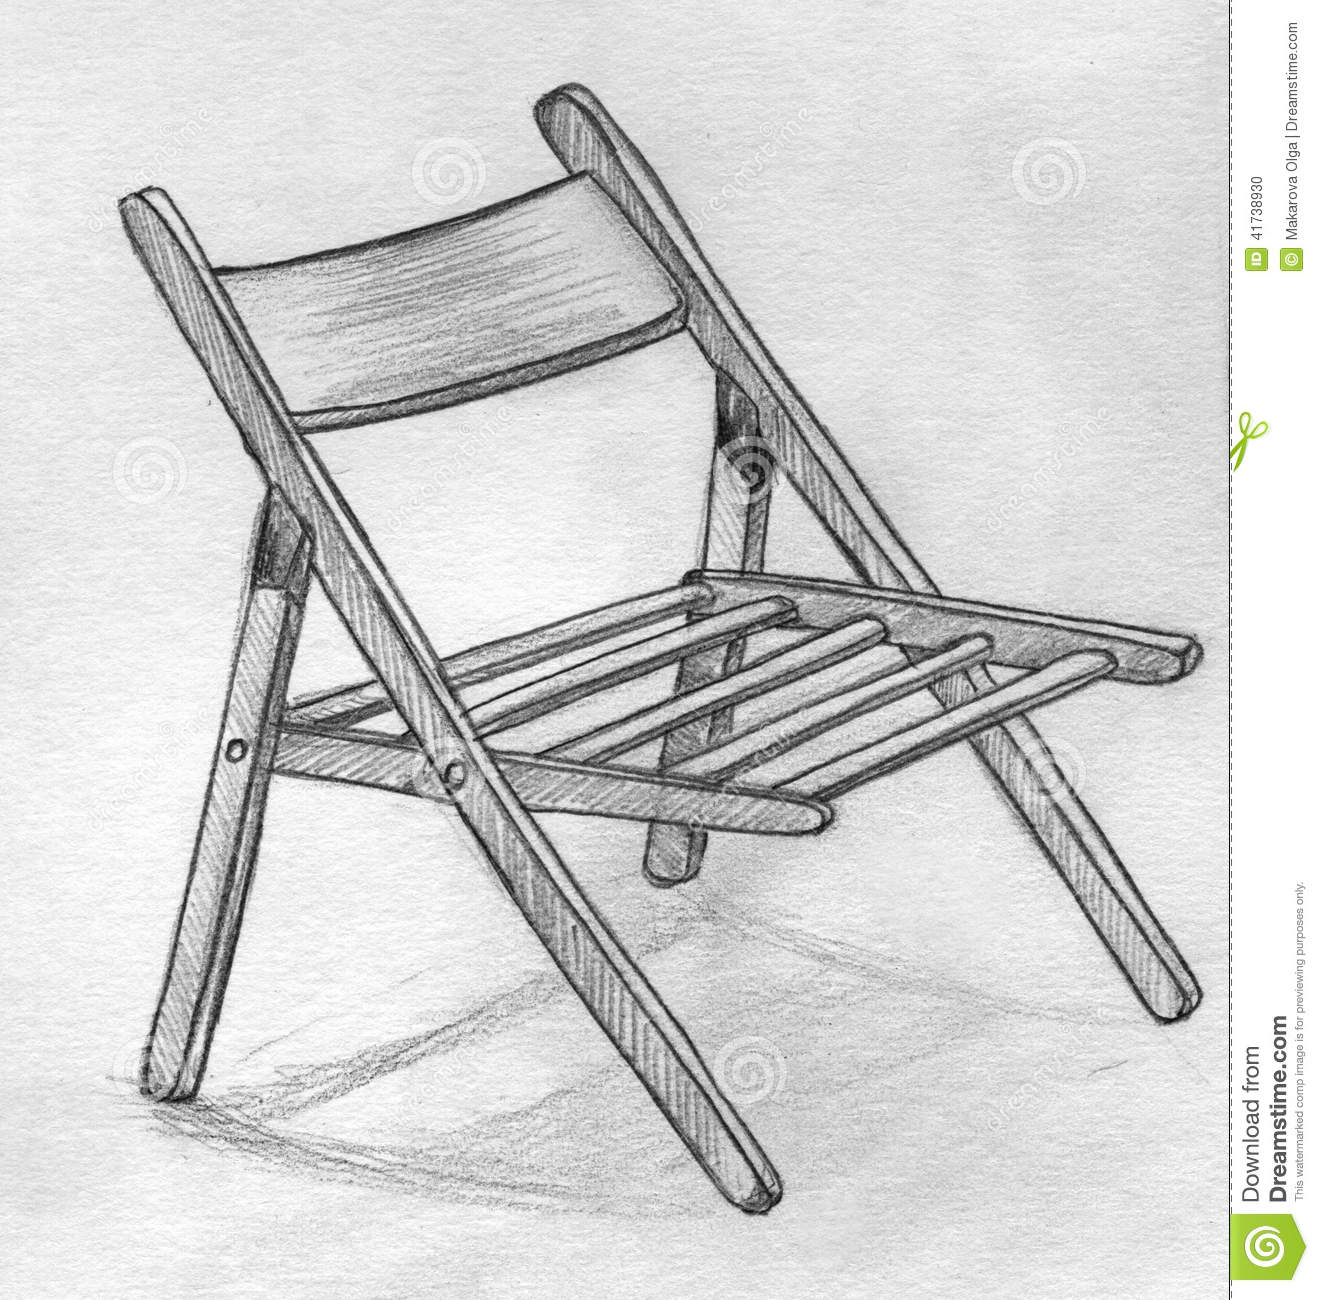 Coffin Tattoo Designs For Men likewise 310326230546784612 also Post magnifying Glass Icon Blue 286760 together with Stock Illustration Hand Drawn Pencil Sketch Folding Chair Shadow Under Image41738930 together with 172896073165338218. on beach people sketches